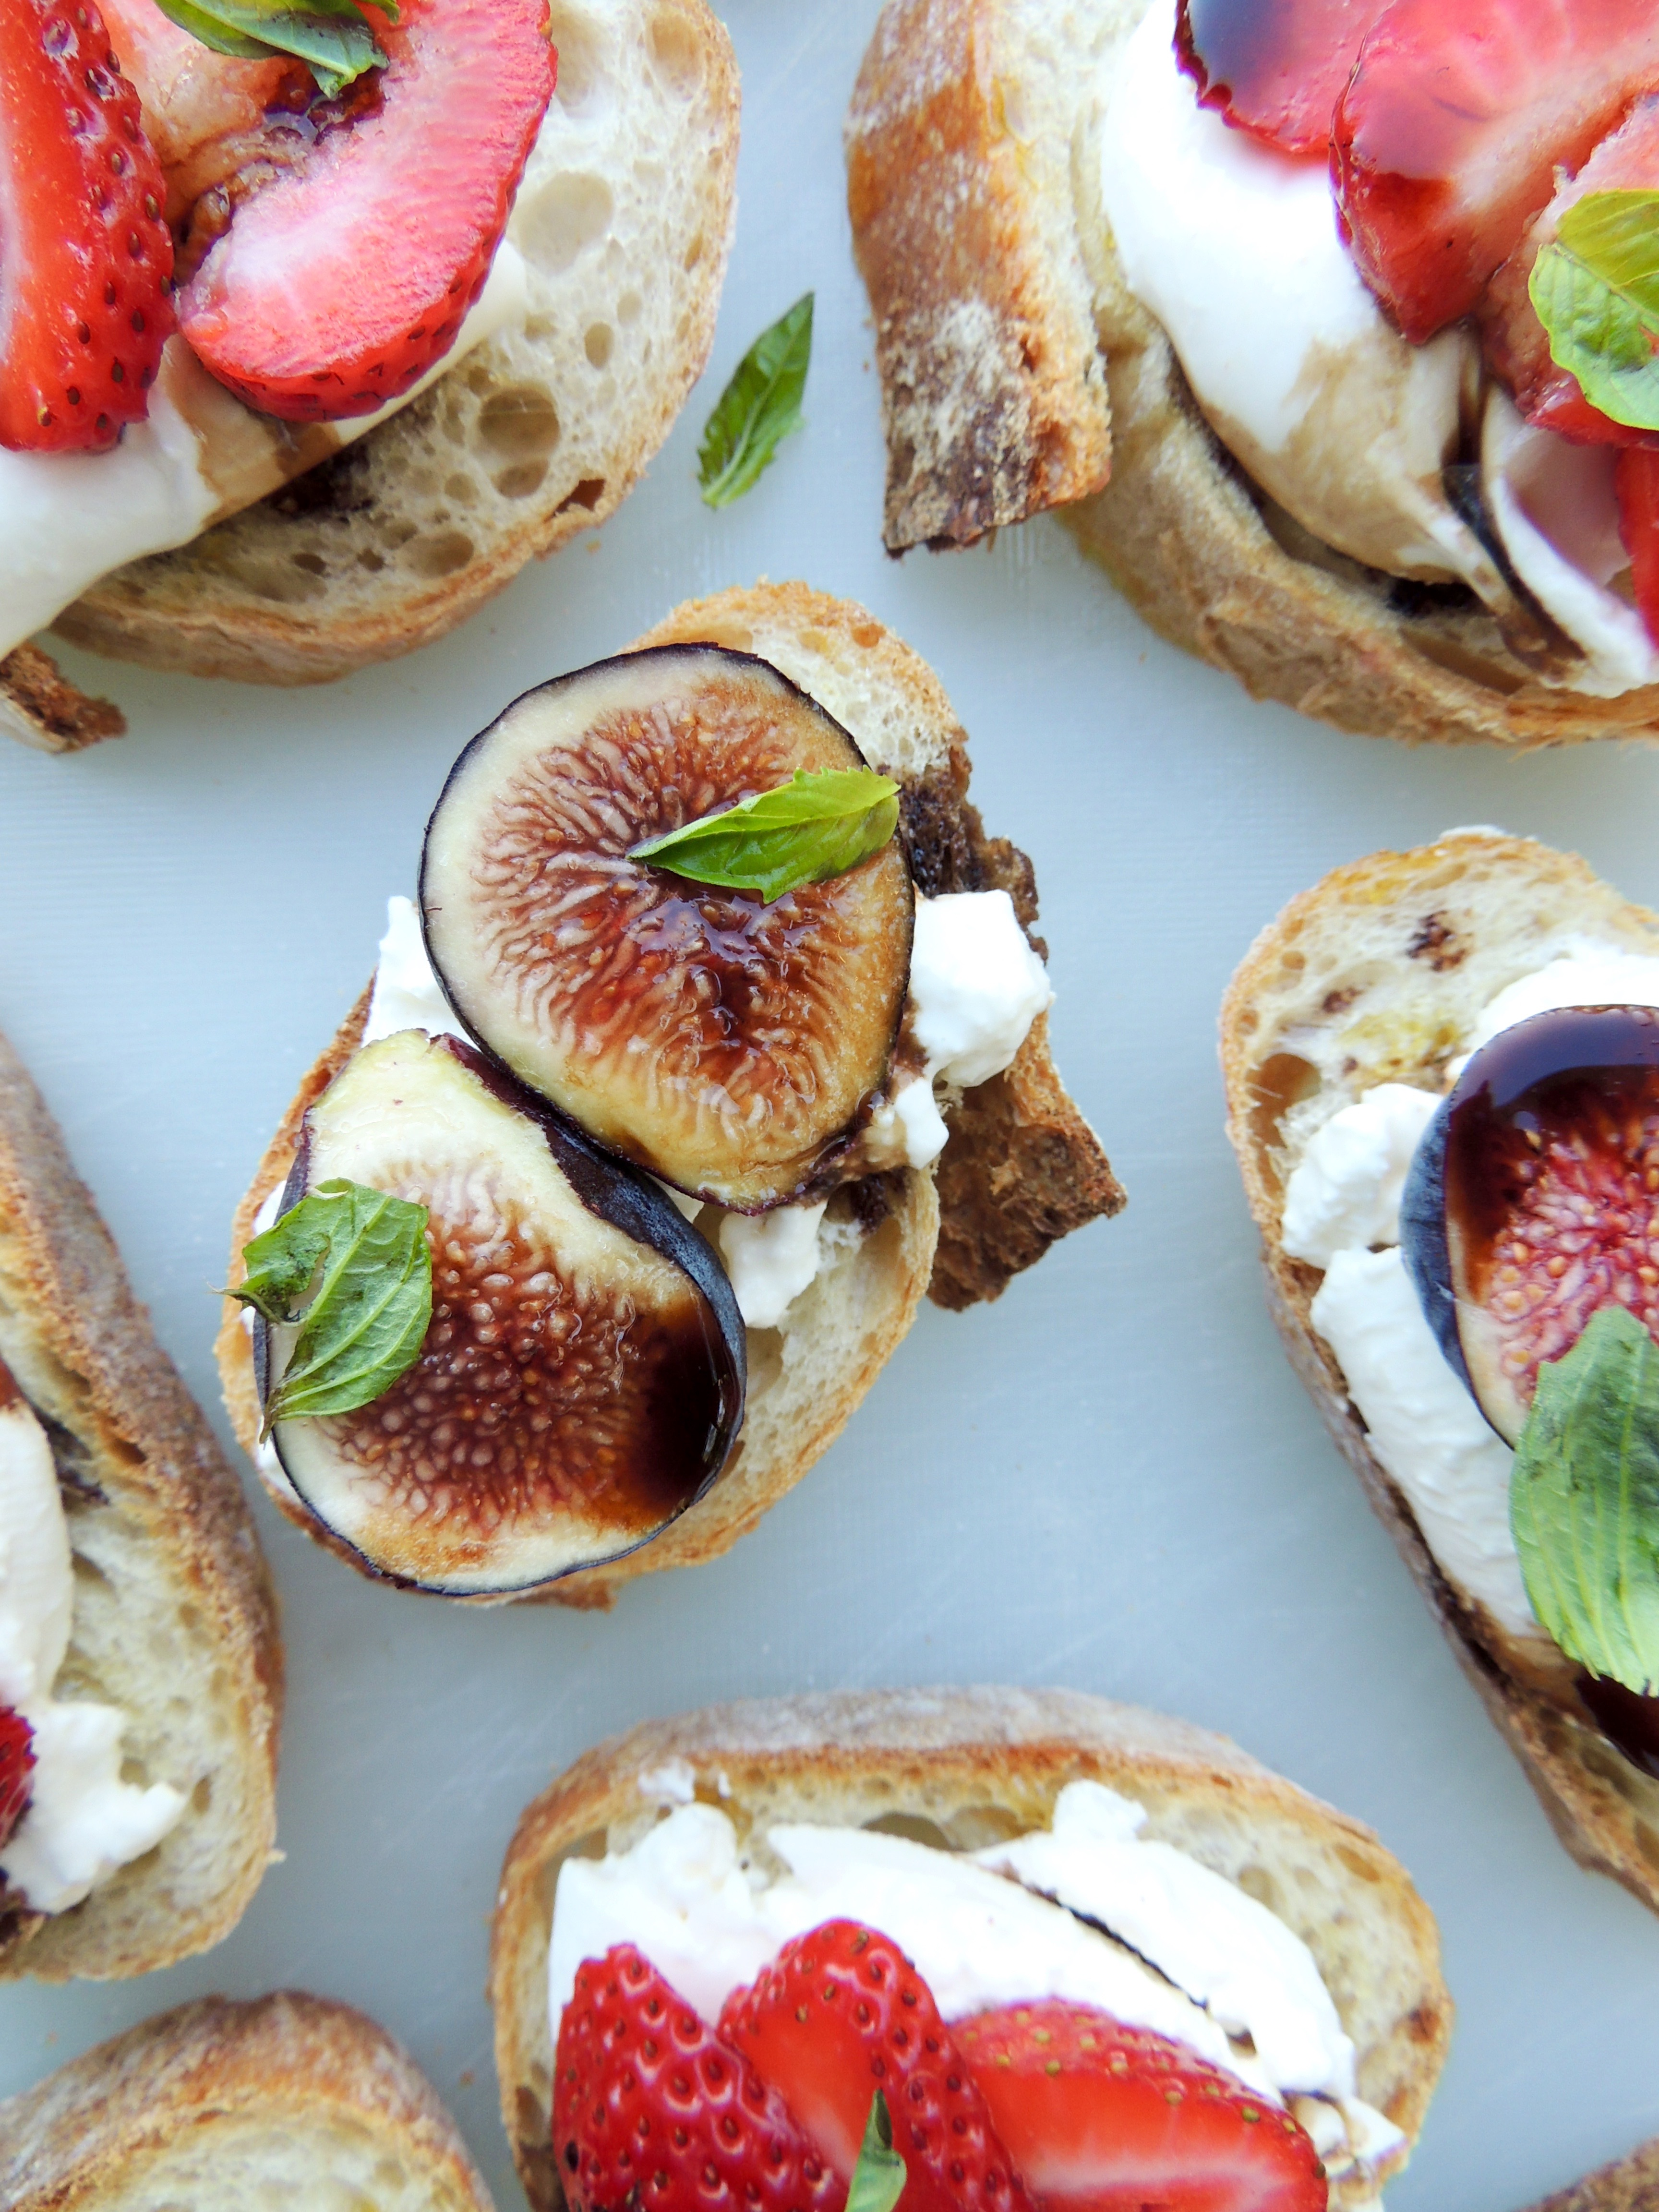 Figs & Strawberries with Burrata on Baguette | Living Healthy in Seattle